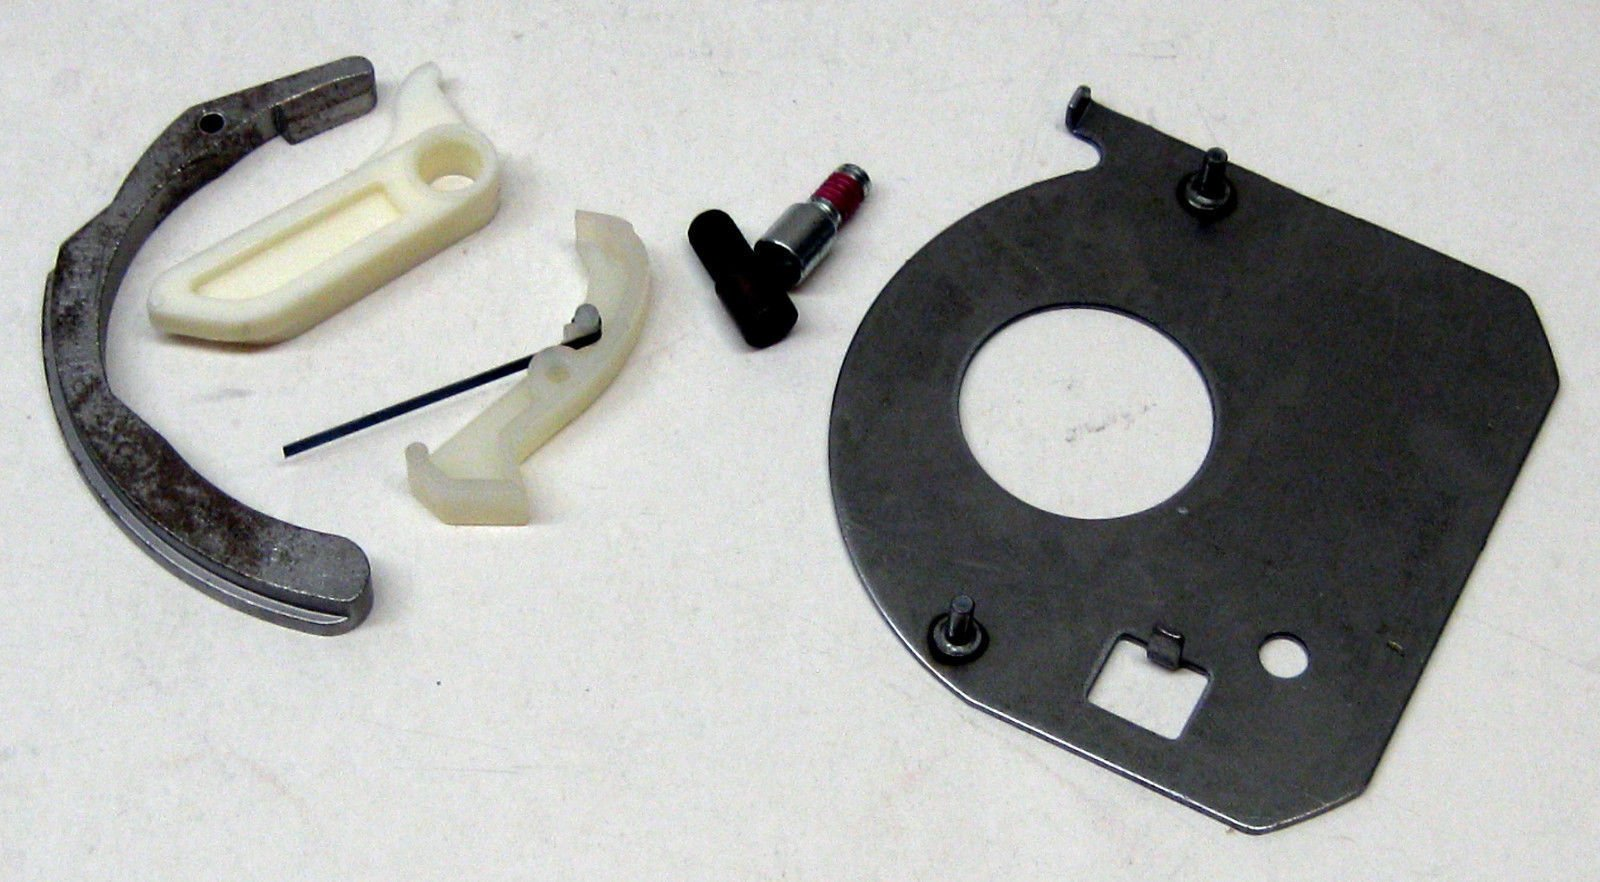 Neutral Drain Kit with Spin Gear for Washer Transmission Gearcase Whirlpool Roper Kitchenaid Kenmore 388253 3360629 3360630 AP3018165 PS349777 WP388253 OEM